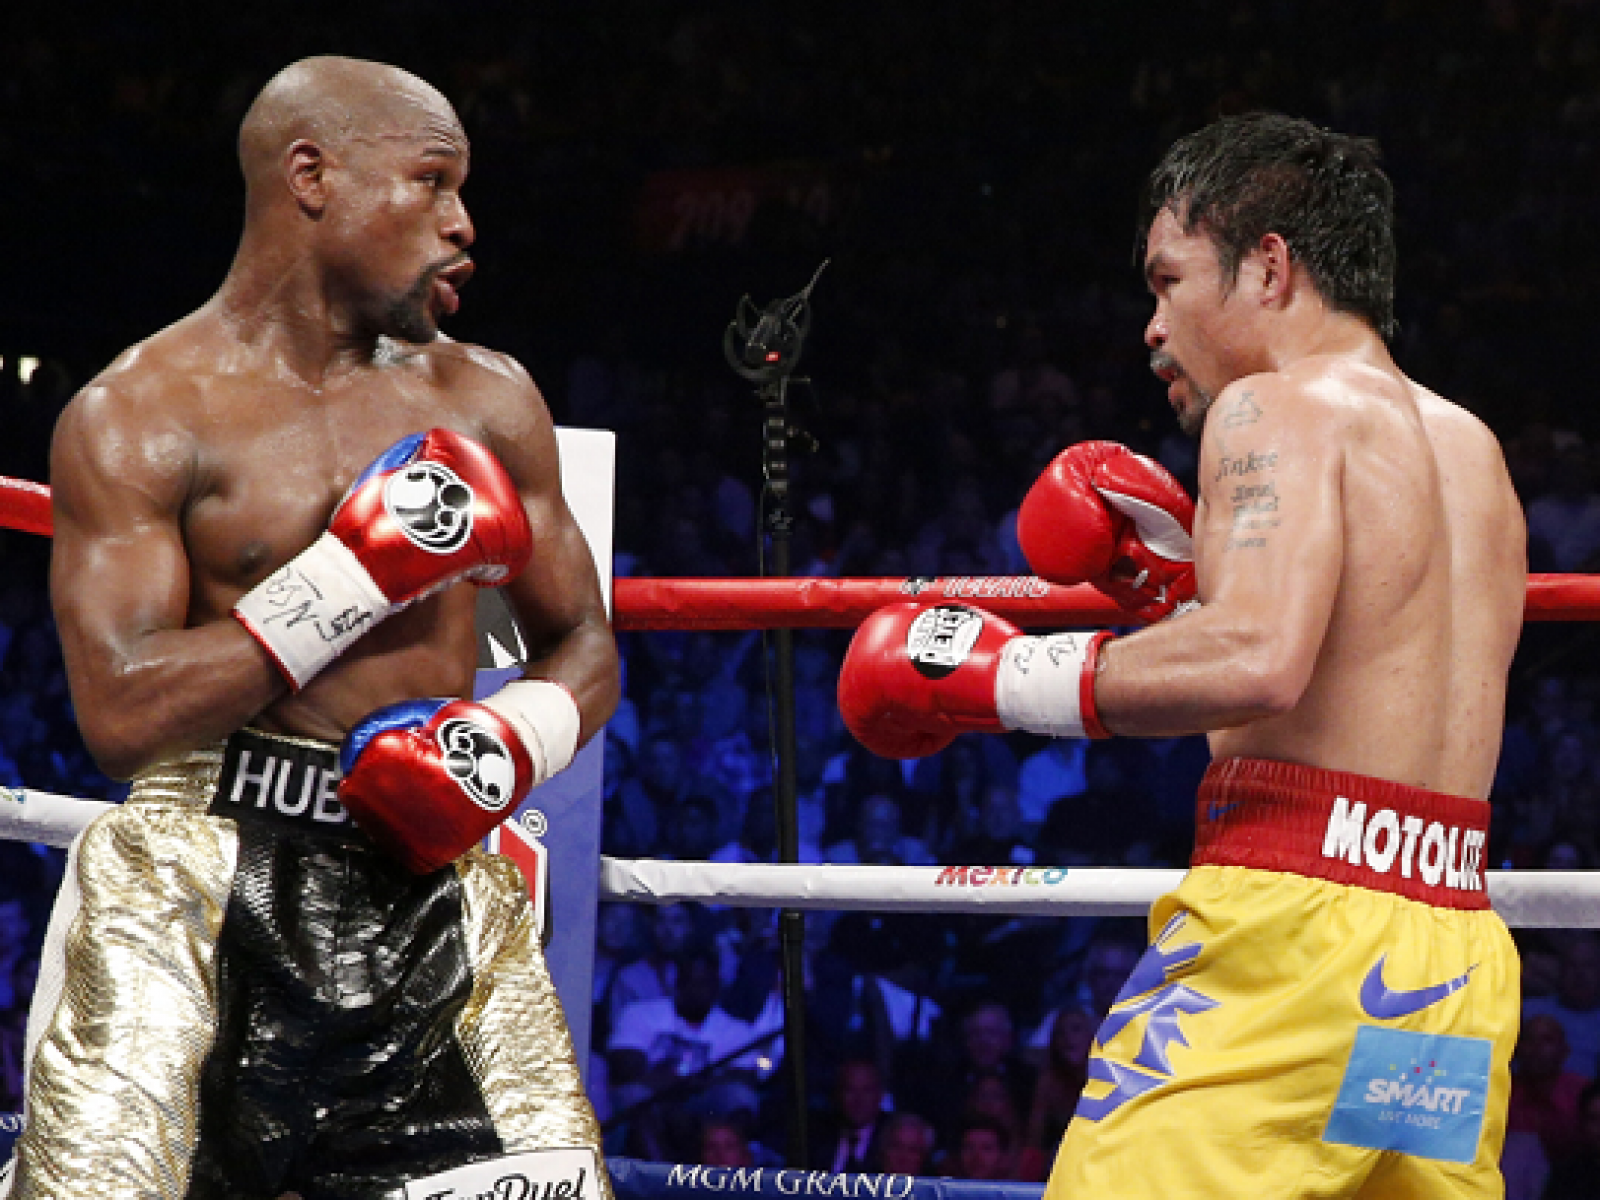 Floyd Mayweather Vs Manny Pacquiao Boxers Planning Rematch